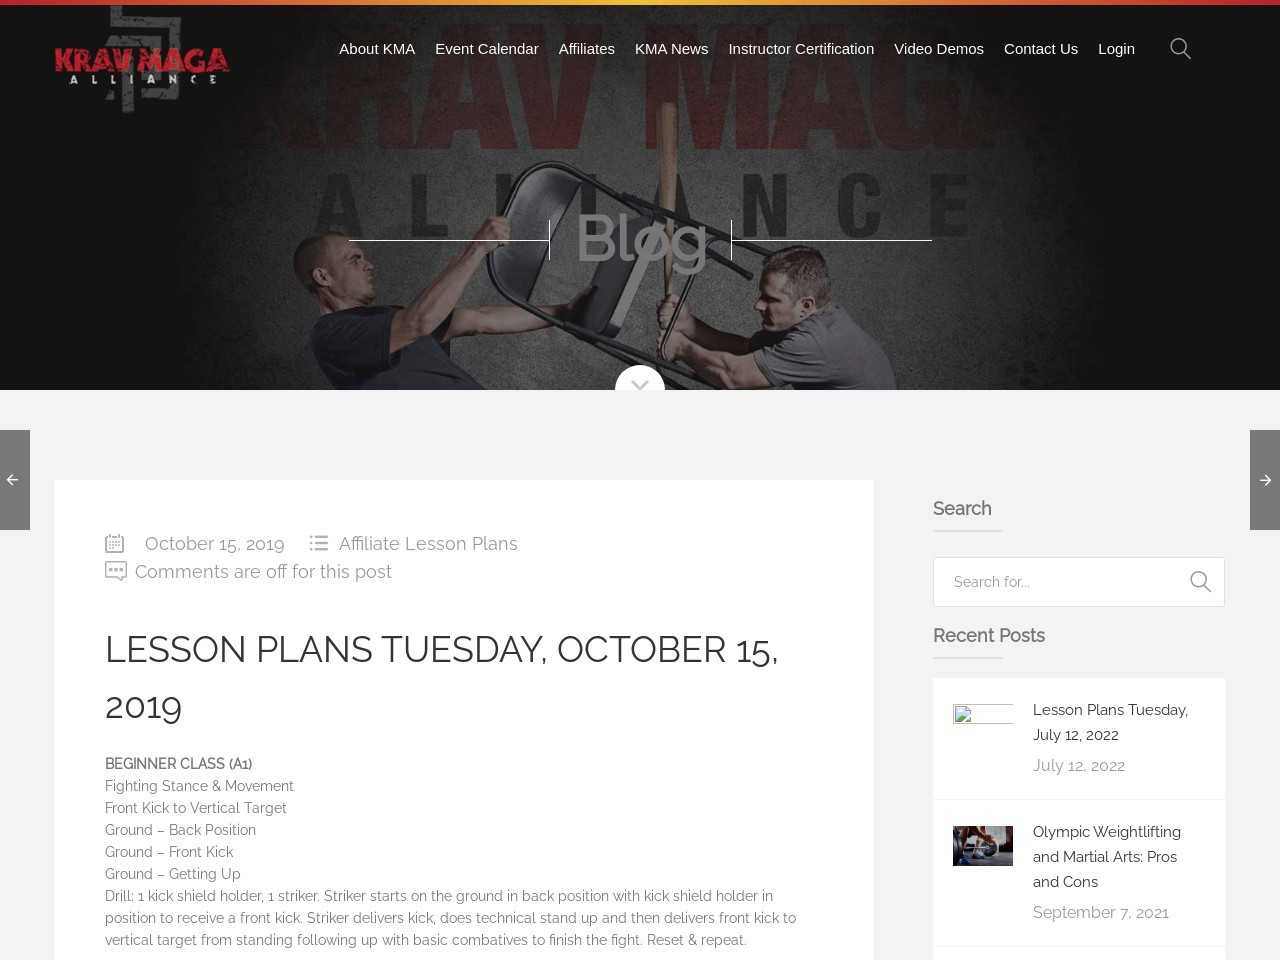 Lesson Plans Tuesday, October 15, 2019